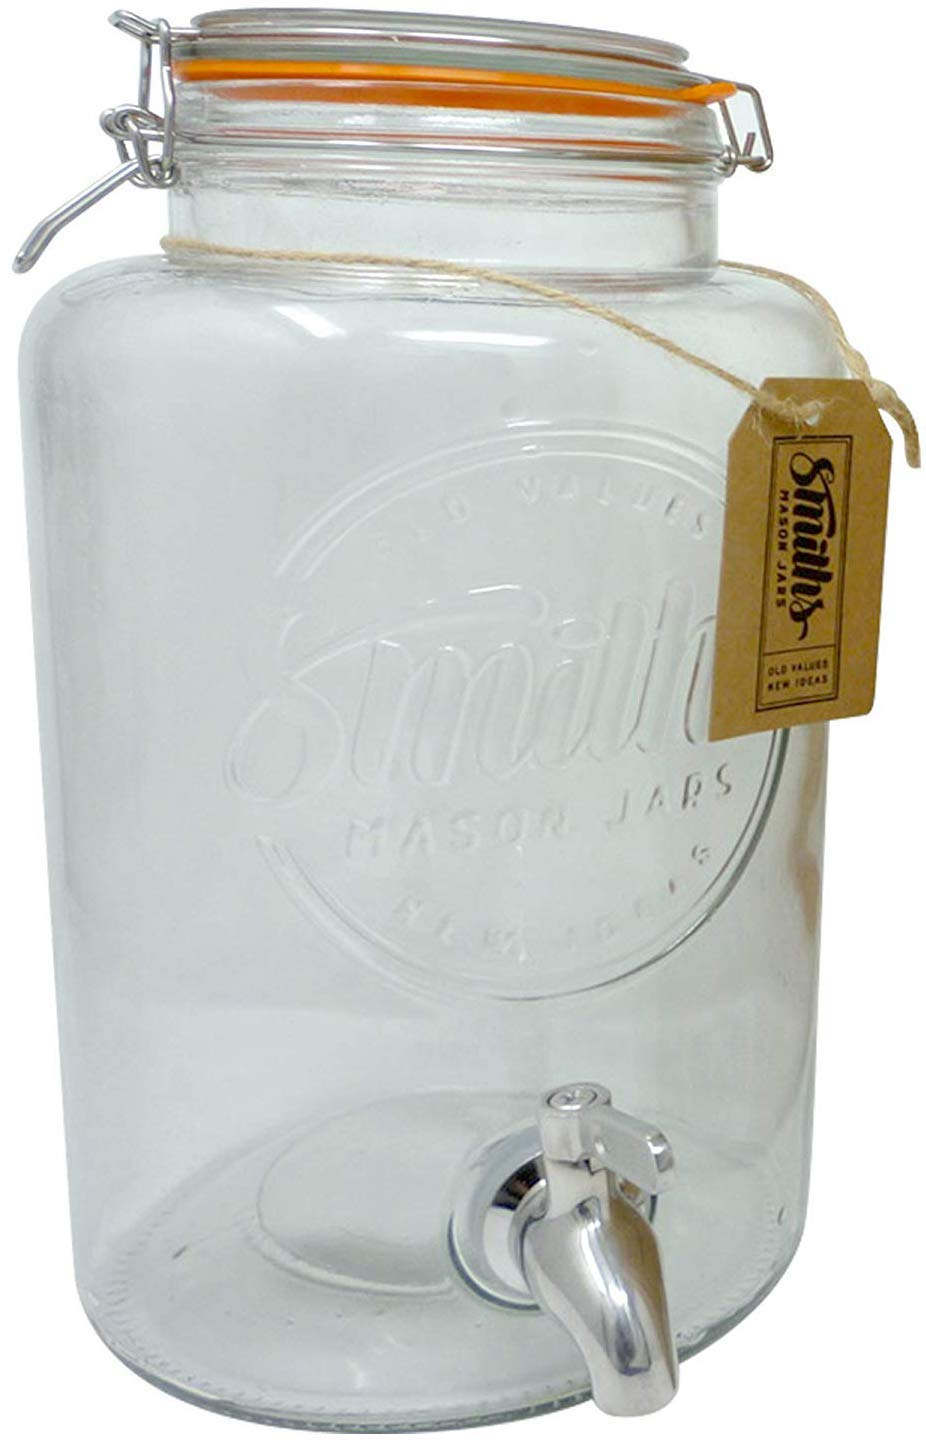 5 Litre Drinks Dispenser with Steel Spigot, wire mesh (to stop blockages) and gift tag, it's the Ultimate Drinks cooler - By Smith's Mason Jars by Smith's Mason Jars (Image #1)